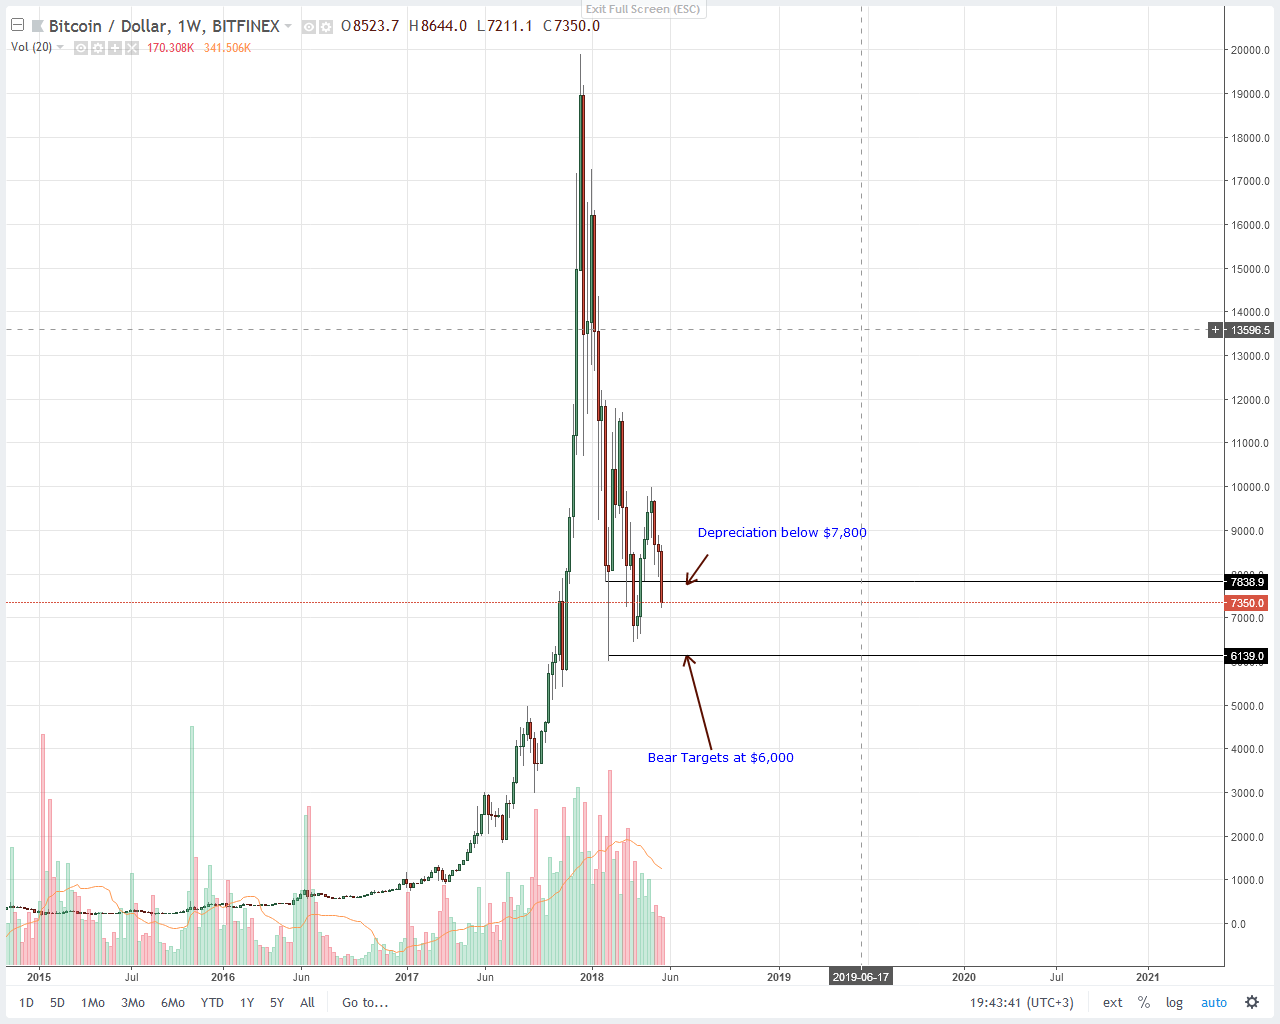 Bitcoin (BTC) Price Technical Analysis